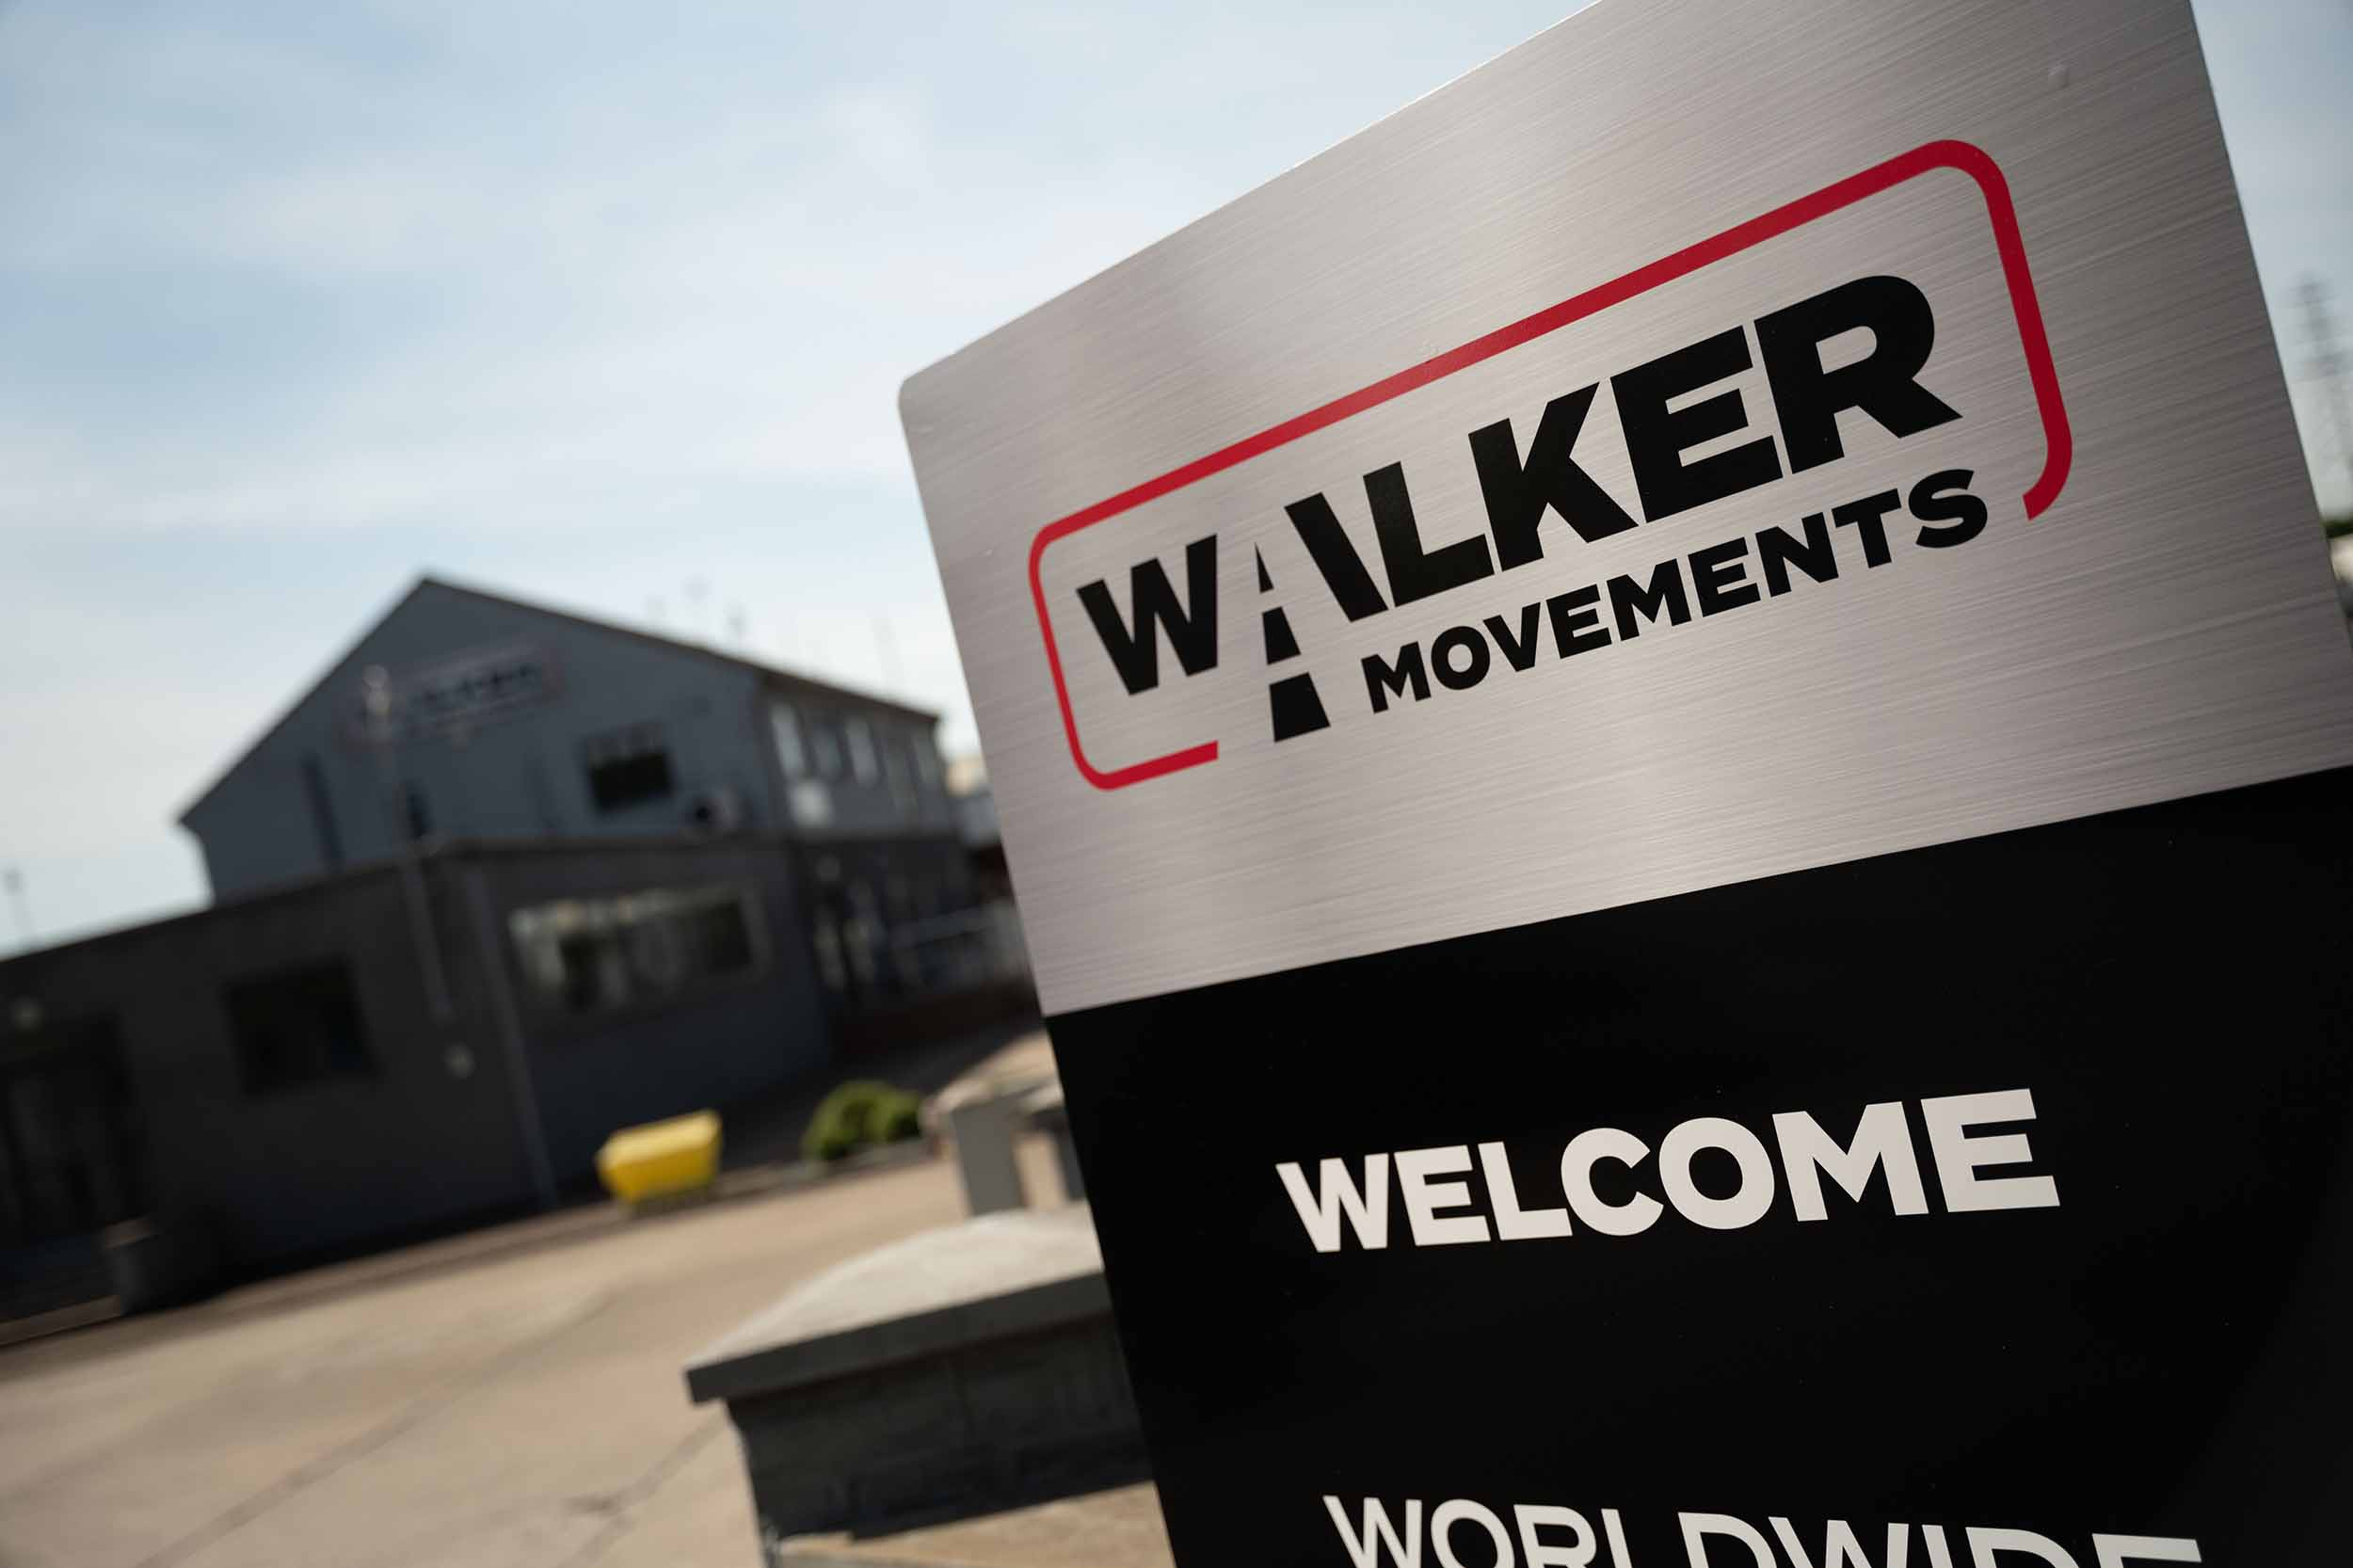 the entrance of walker movements with a welcome sign